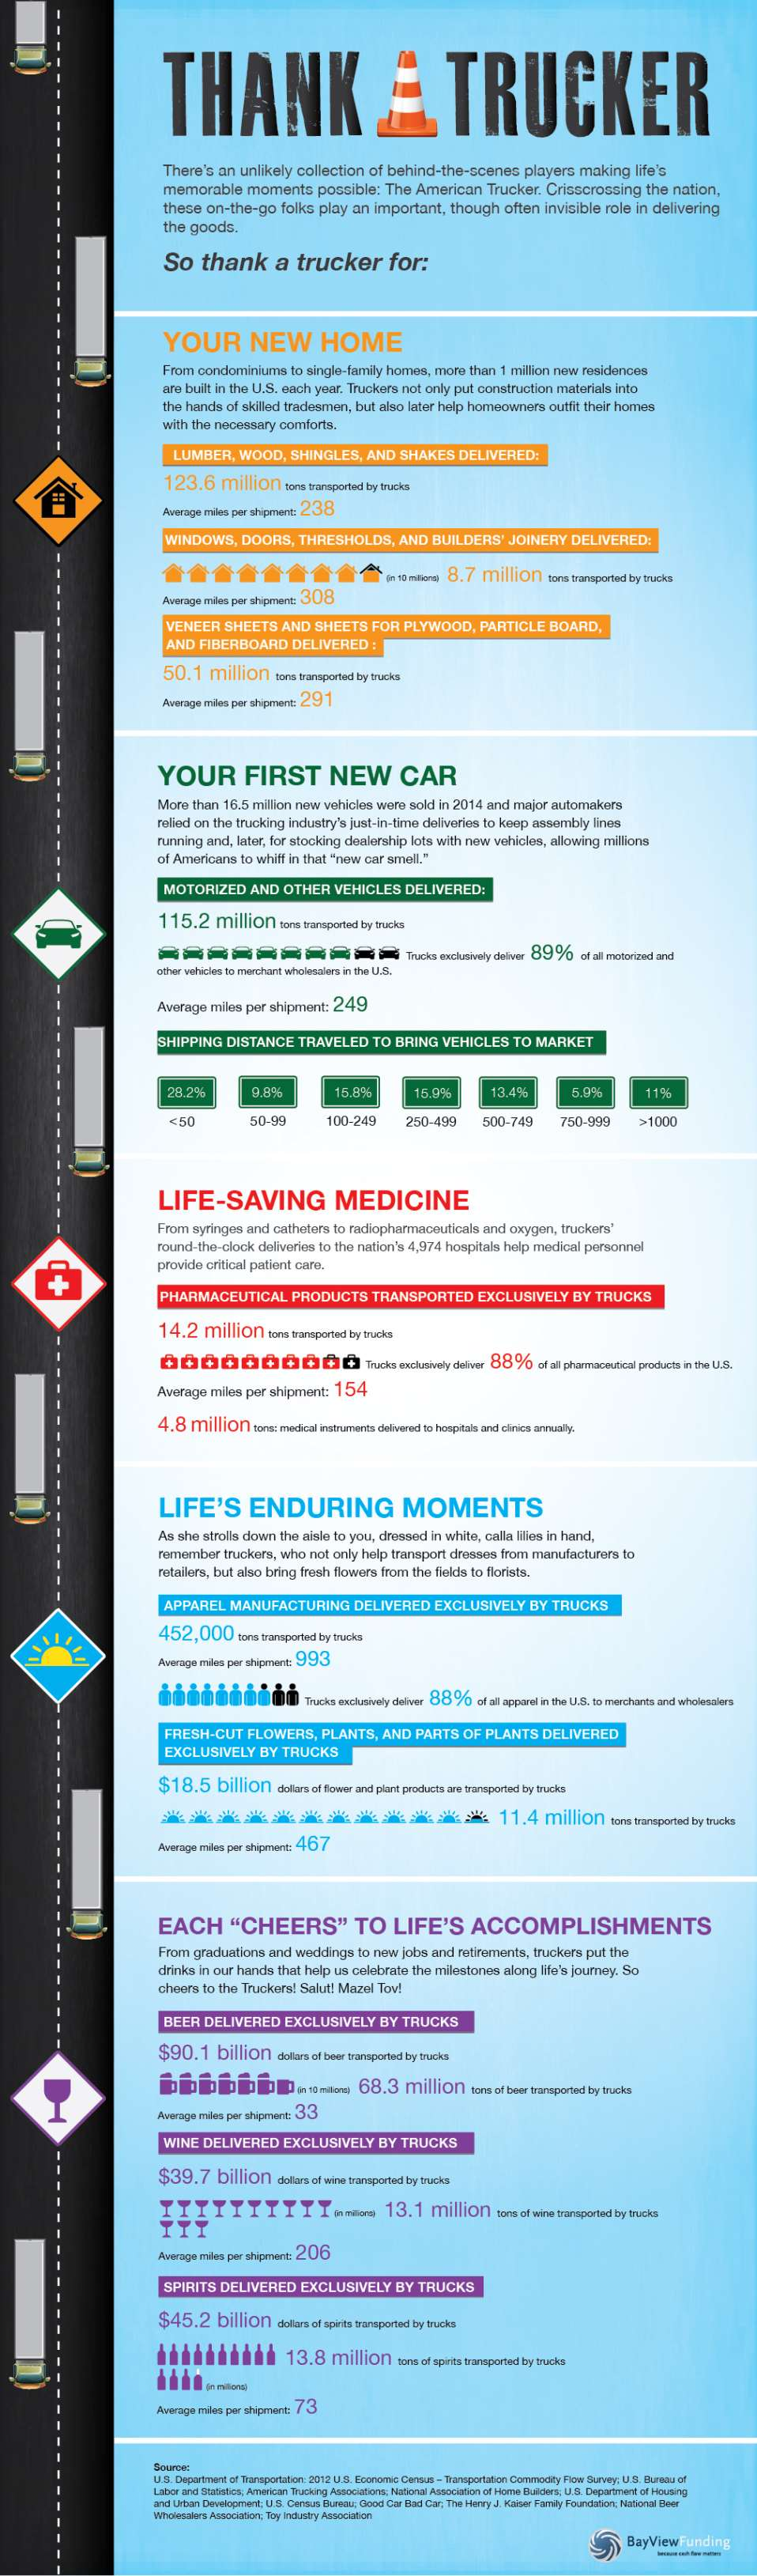 Thank a Trucker Infographic